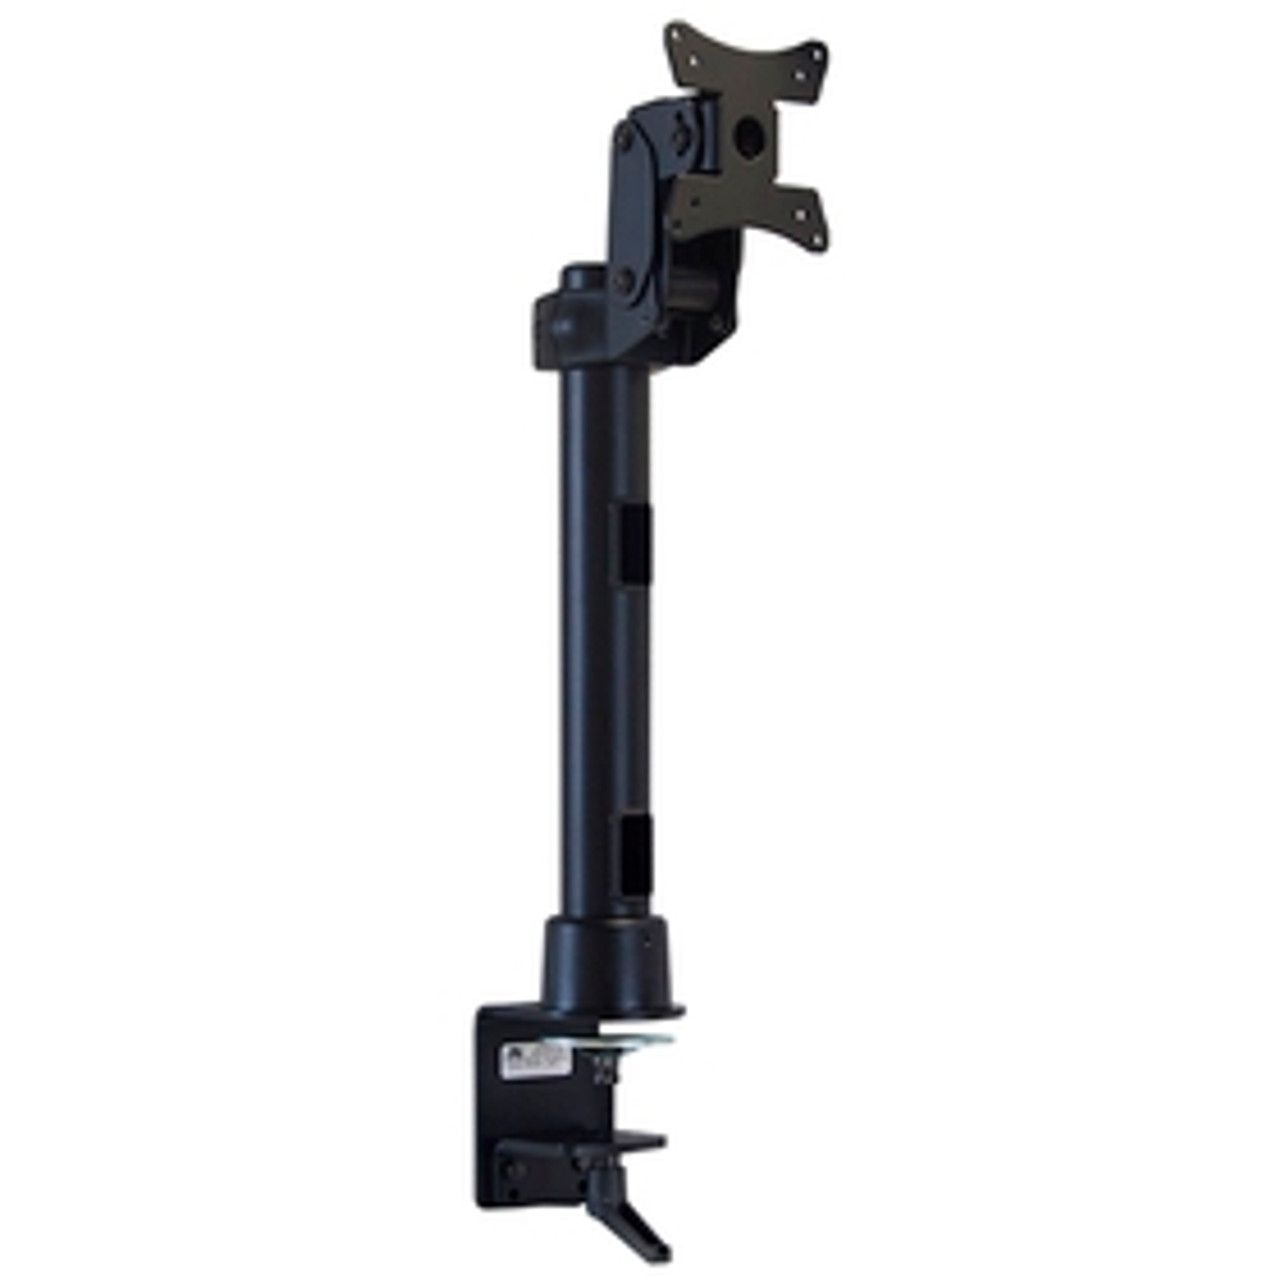 POS Monitor Mount With Desk Clamp 16 inch Pole